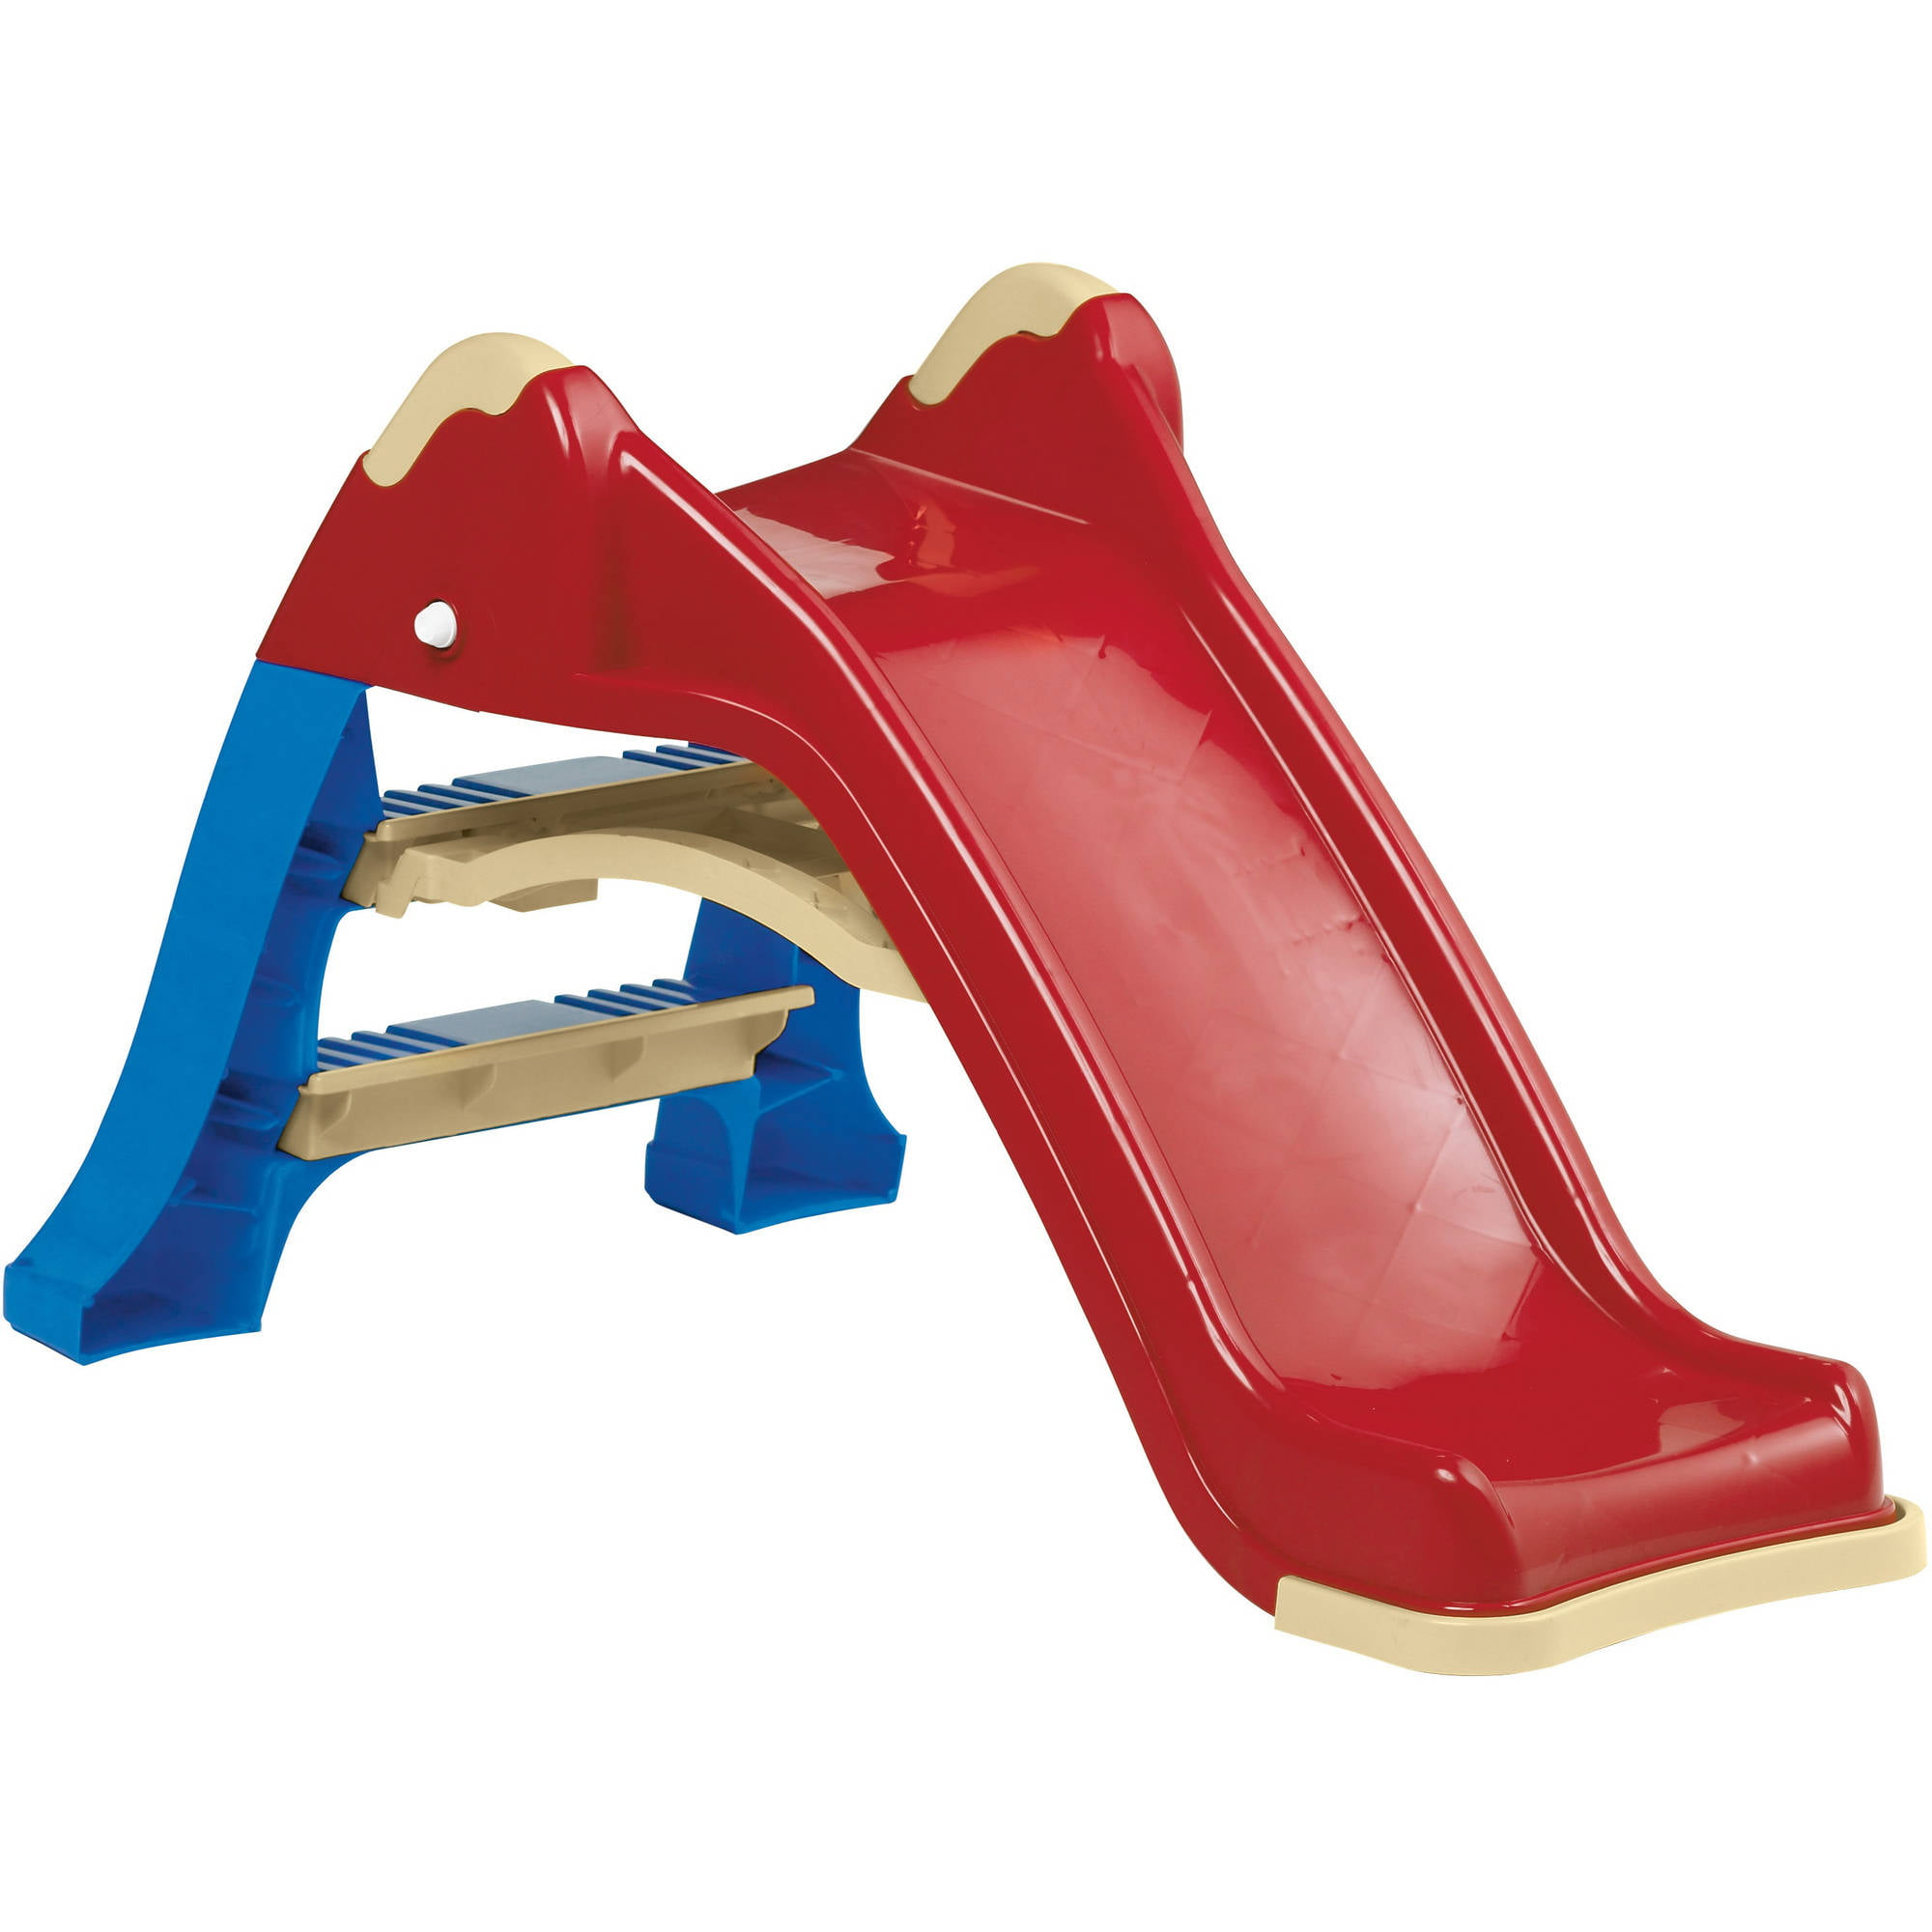 American Plastic Toys Indoor/ Outdoor Folding Slide   Walmart.com